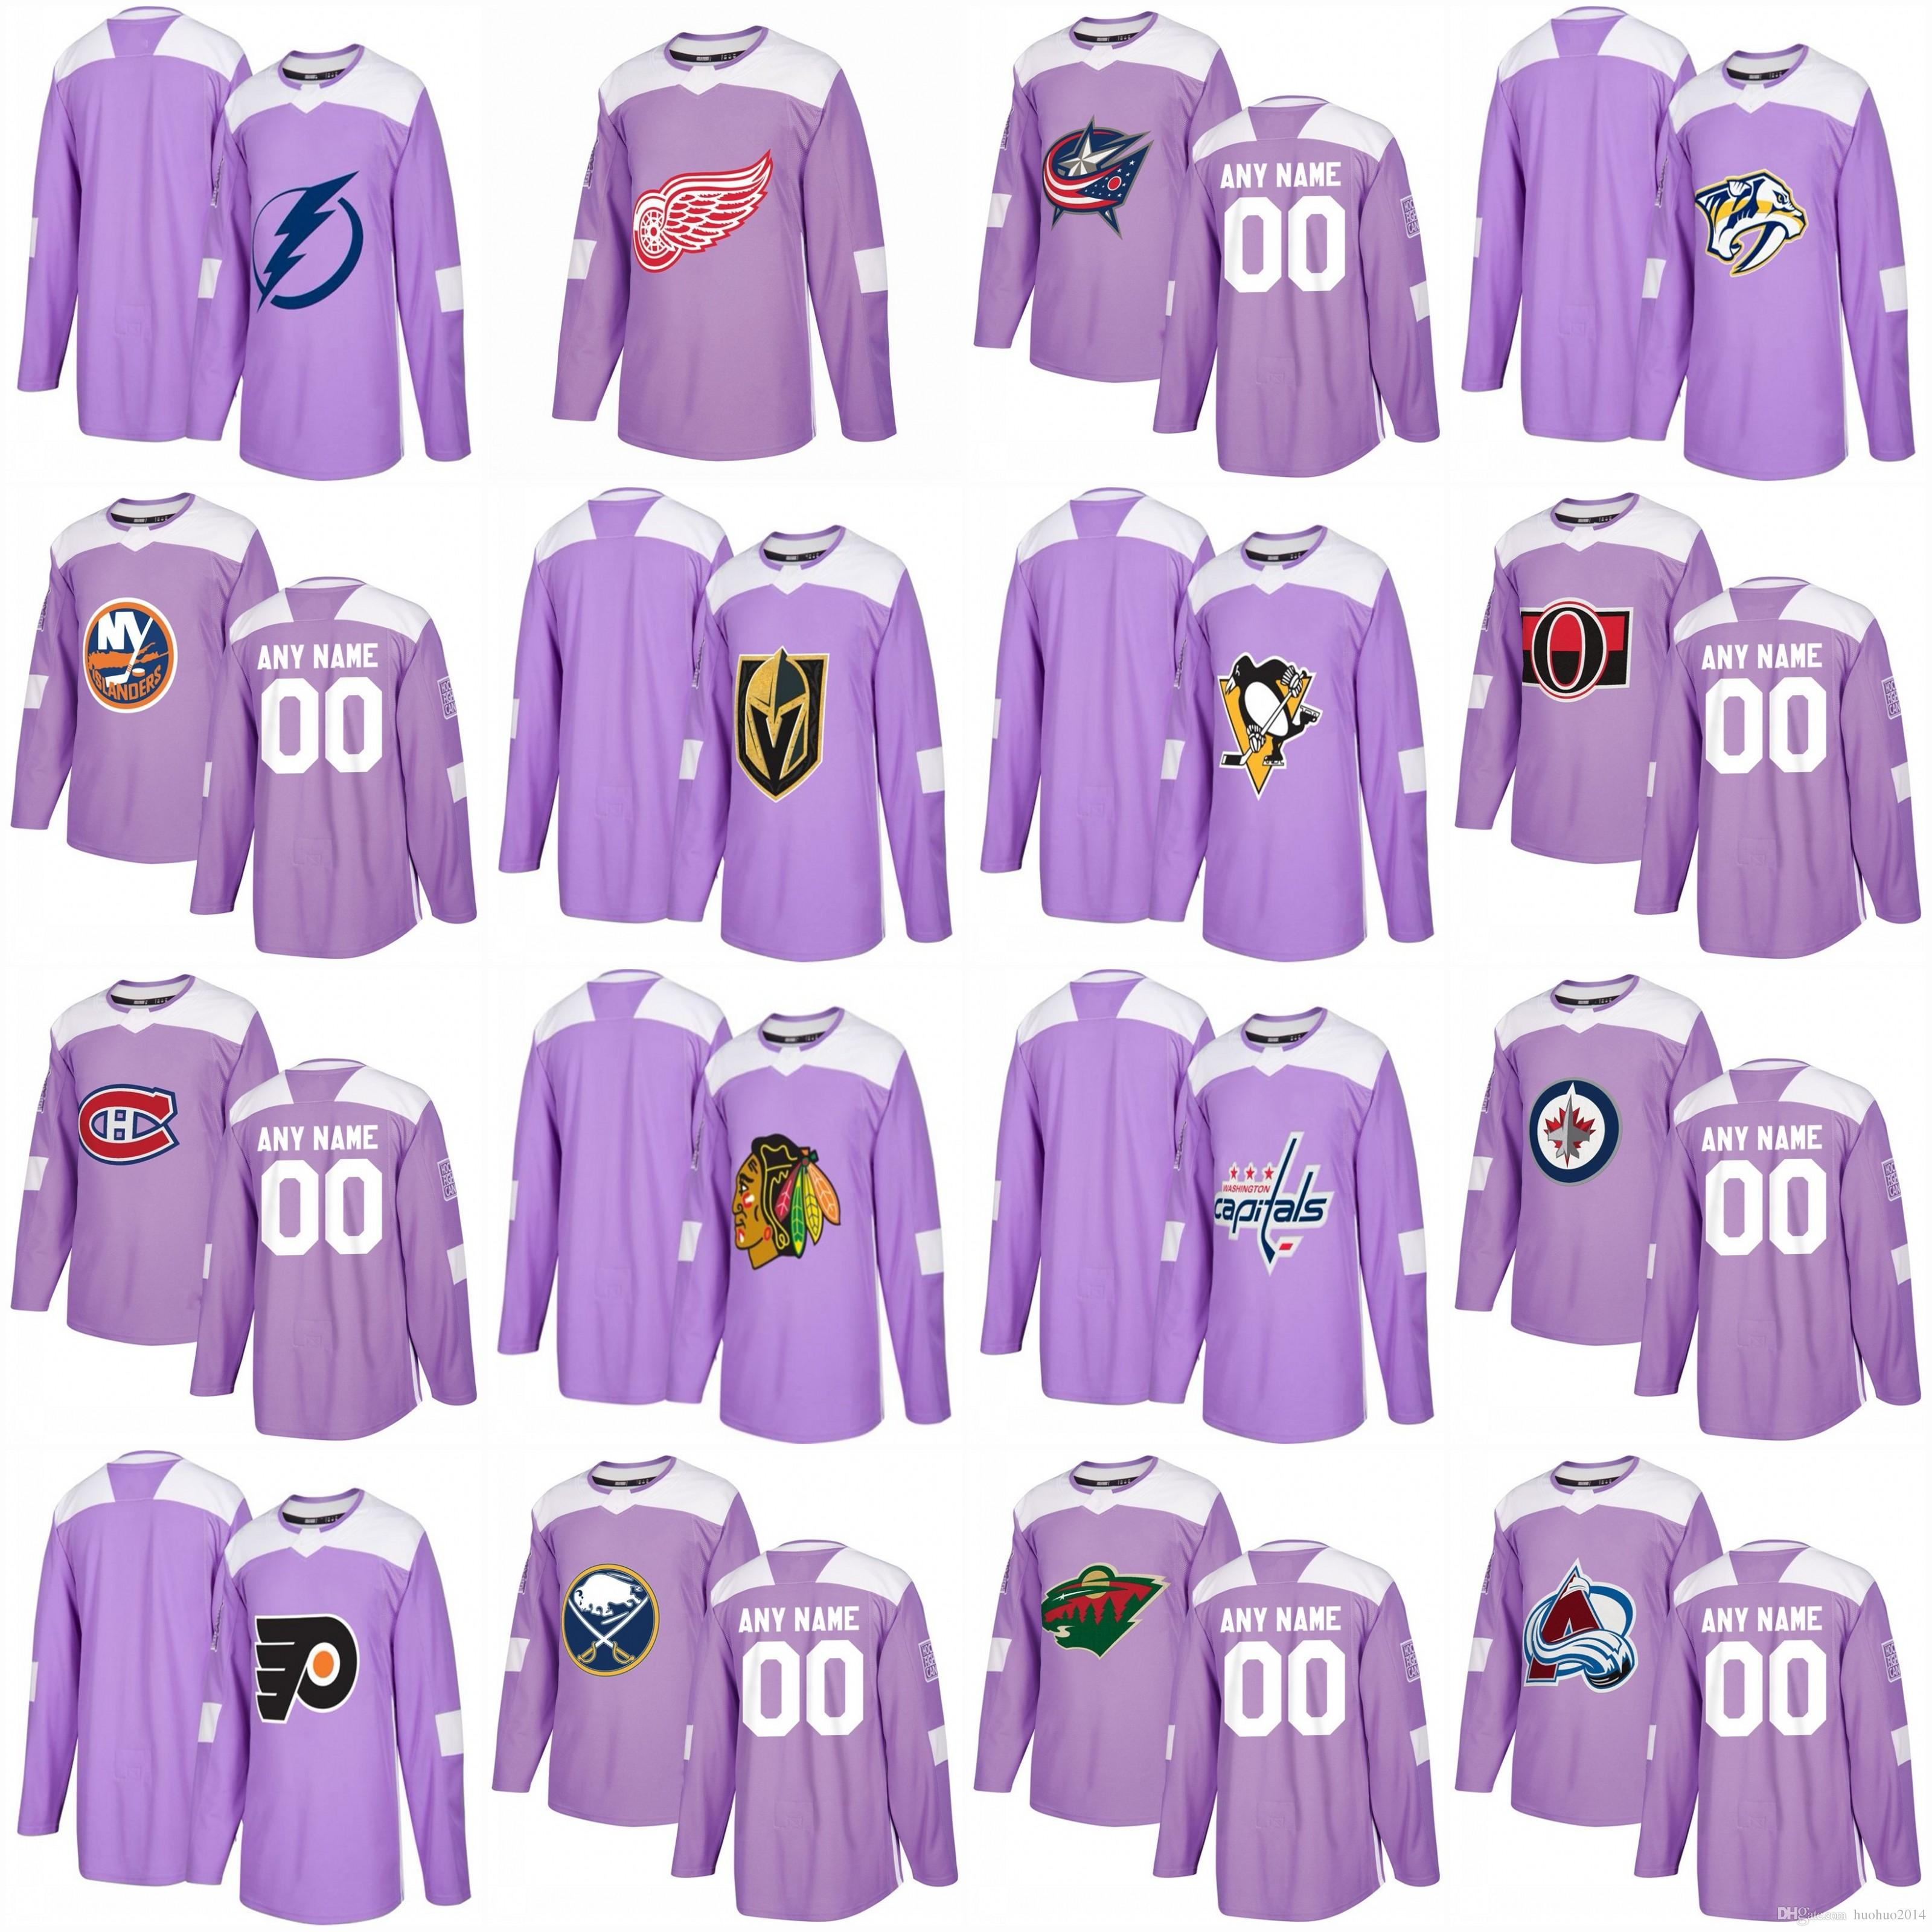 watch 5dda2 d2678 2017 Purple Hockey Fights Cancer Practice Jersey Vegas Golden Knights  Blackhawks Penguins Canadiens Senators Capitals Rangers Custom Jerseys